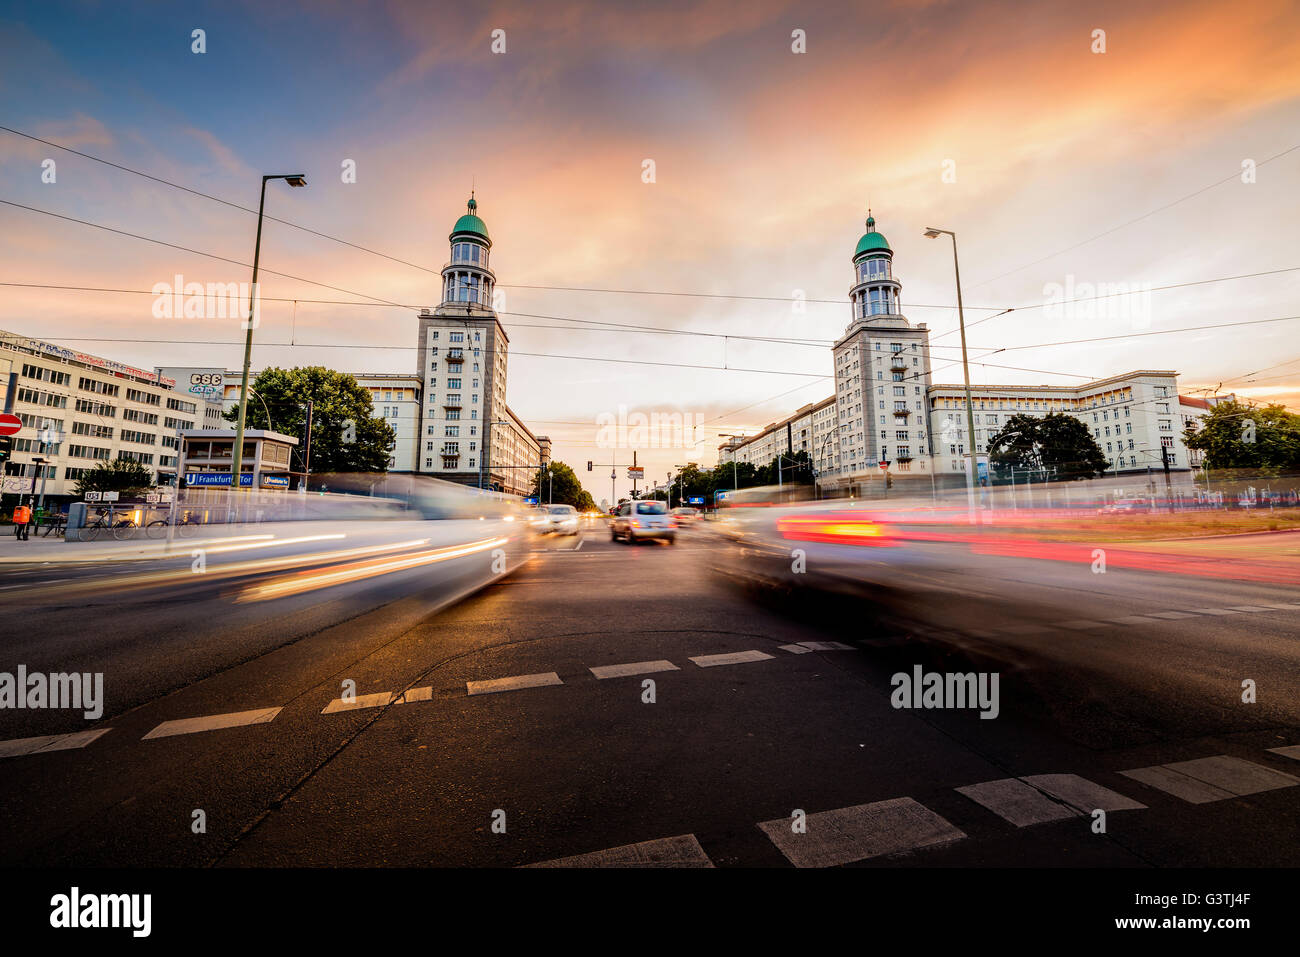 Germany, Berlin, Tyskland, Frankfurter Tor, Blurred traffic on urban road - Stock Image